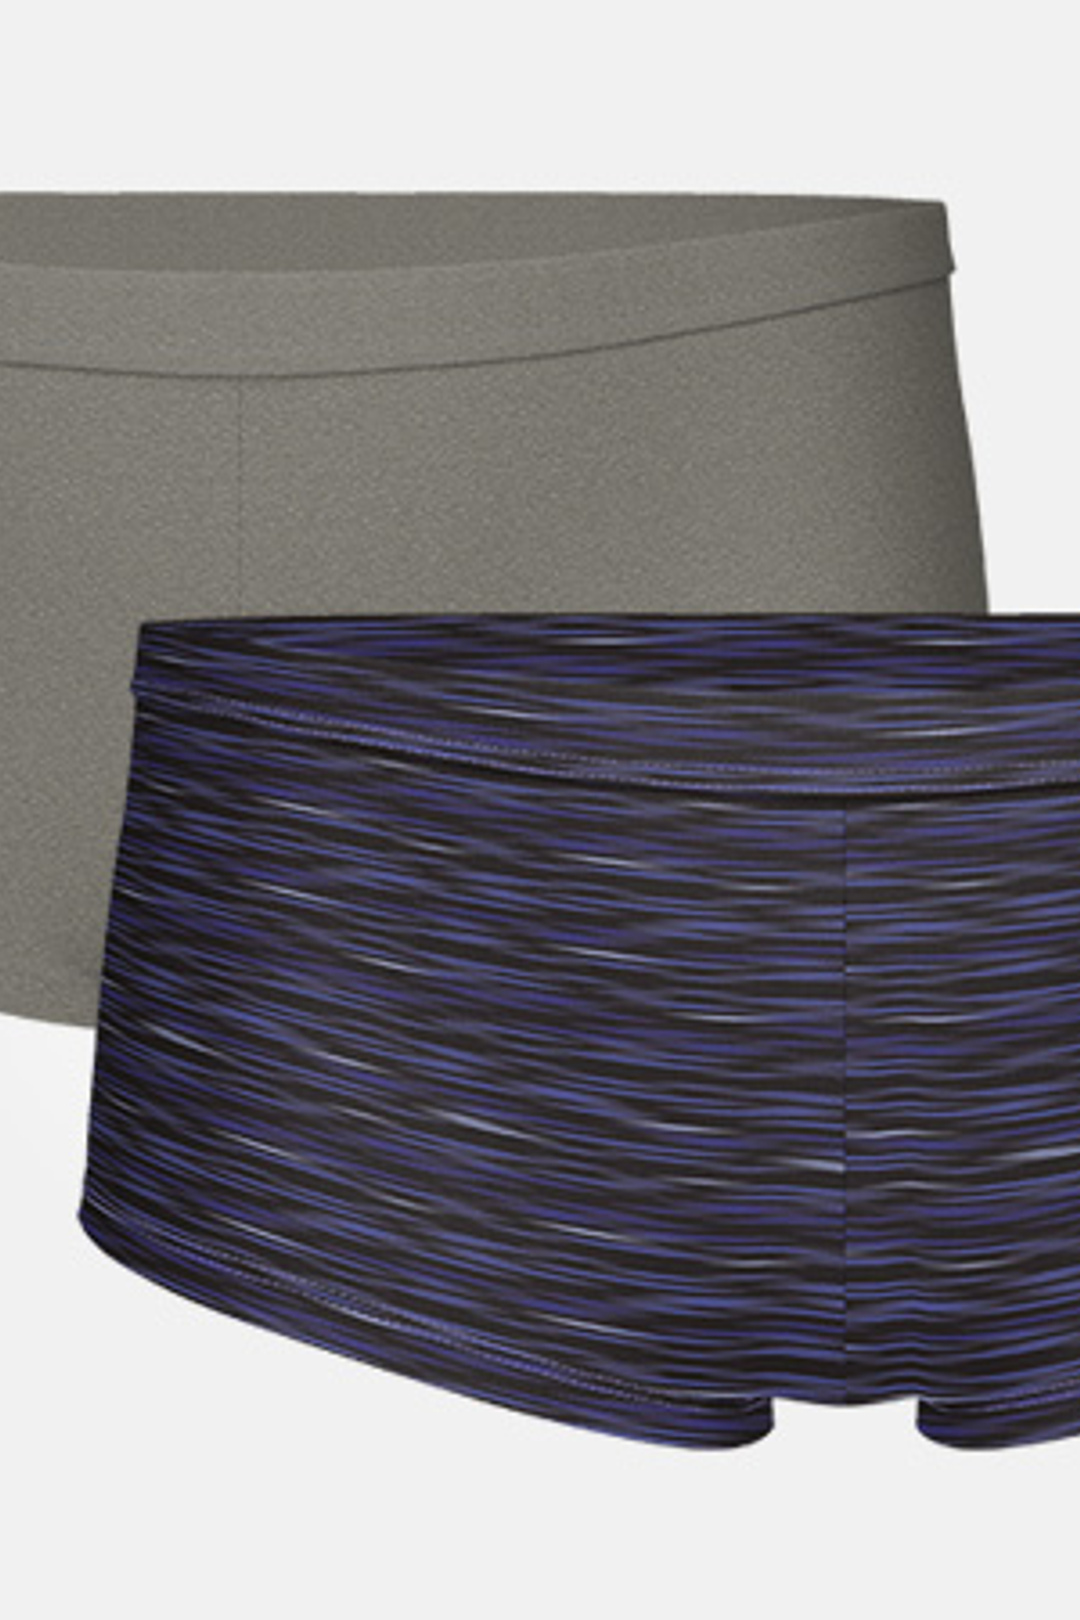 2-pack Women's Bamboo Boxer - Charcoal Gray/Space Grey Navy